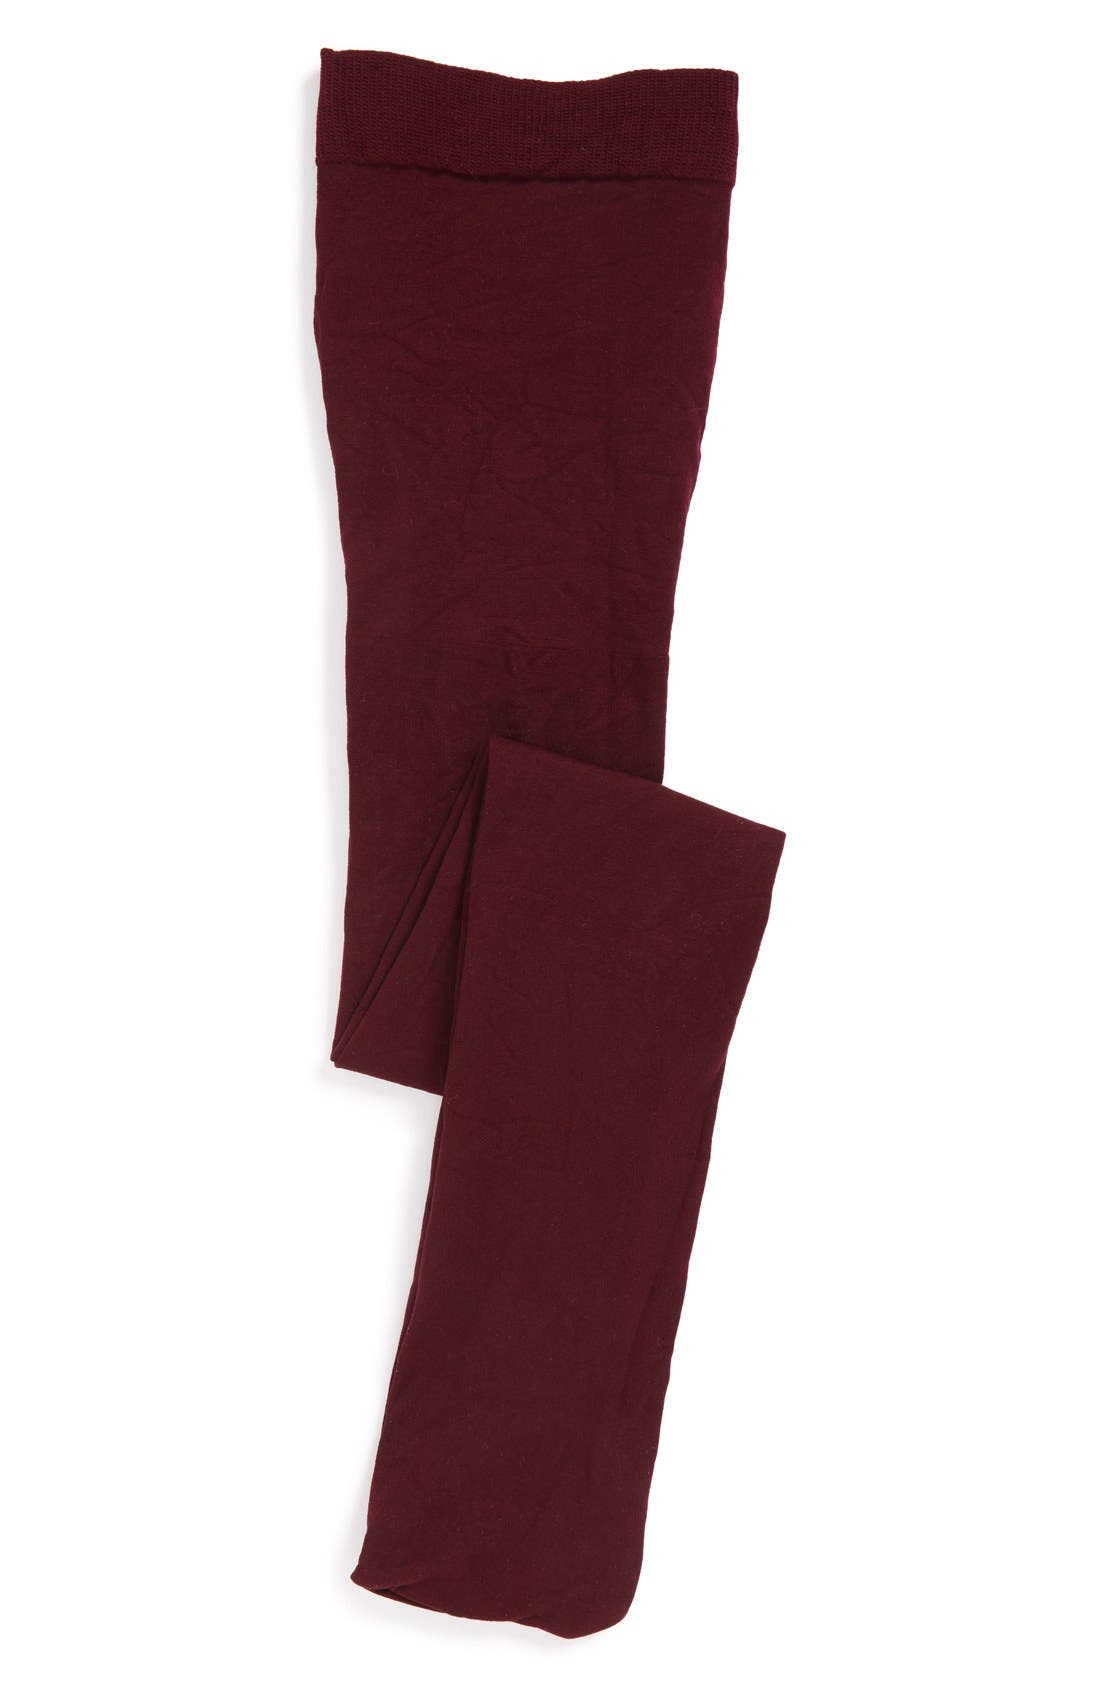 'So Fine' Microfiber Tights,                             Main thumbnail 1, color,                             Burgundy Stem